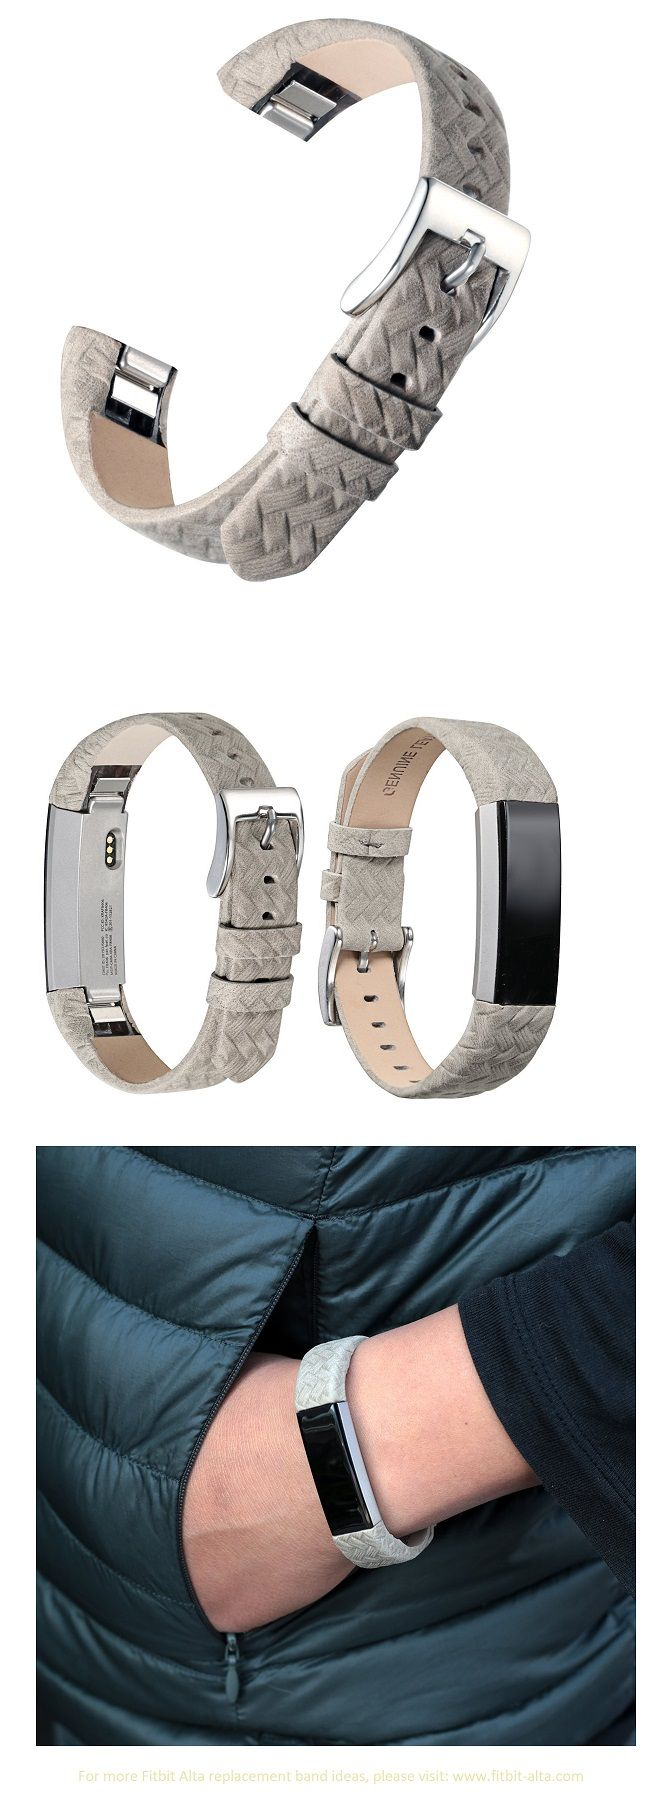 Bayite Leather Replacement Bands for Fitbit Alta - Suede Textured Grey